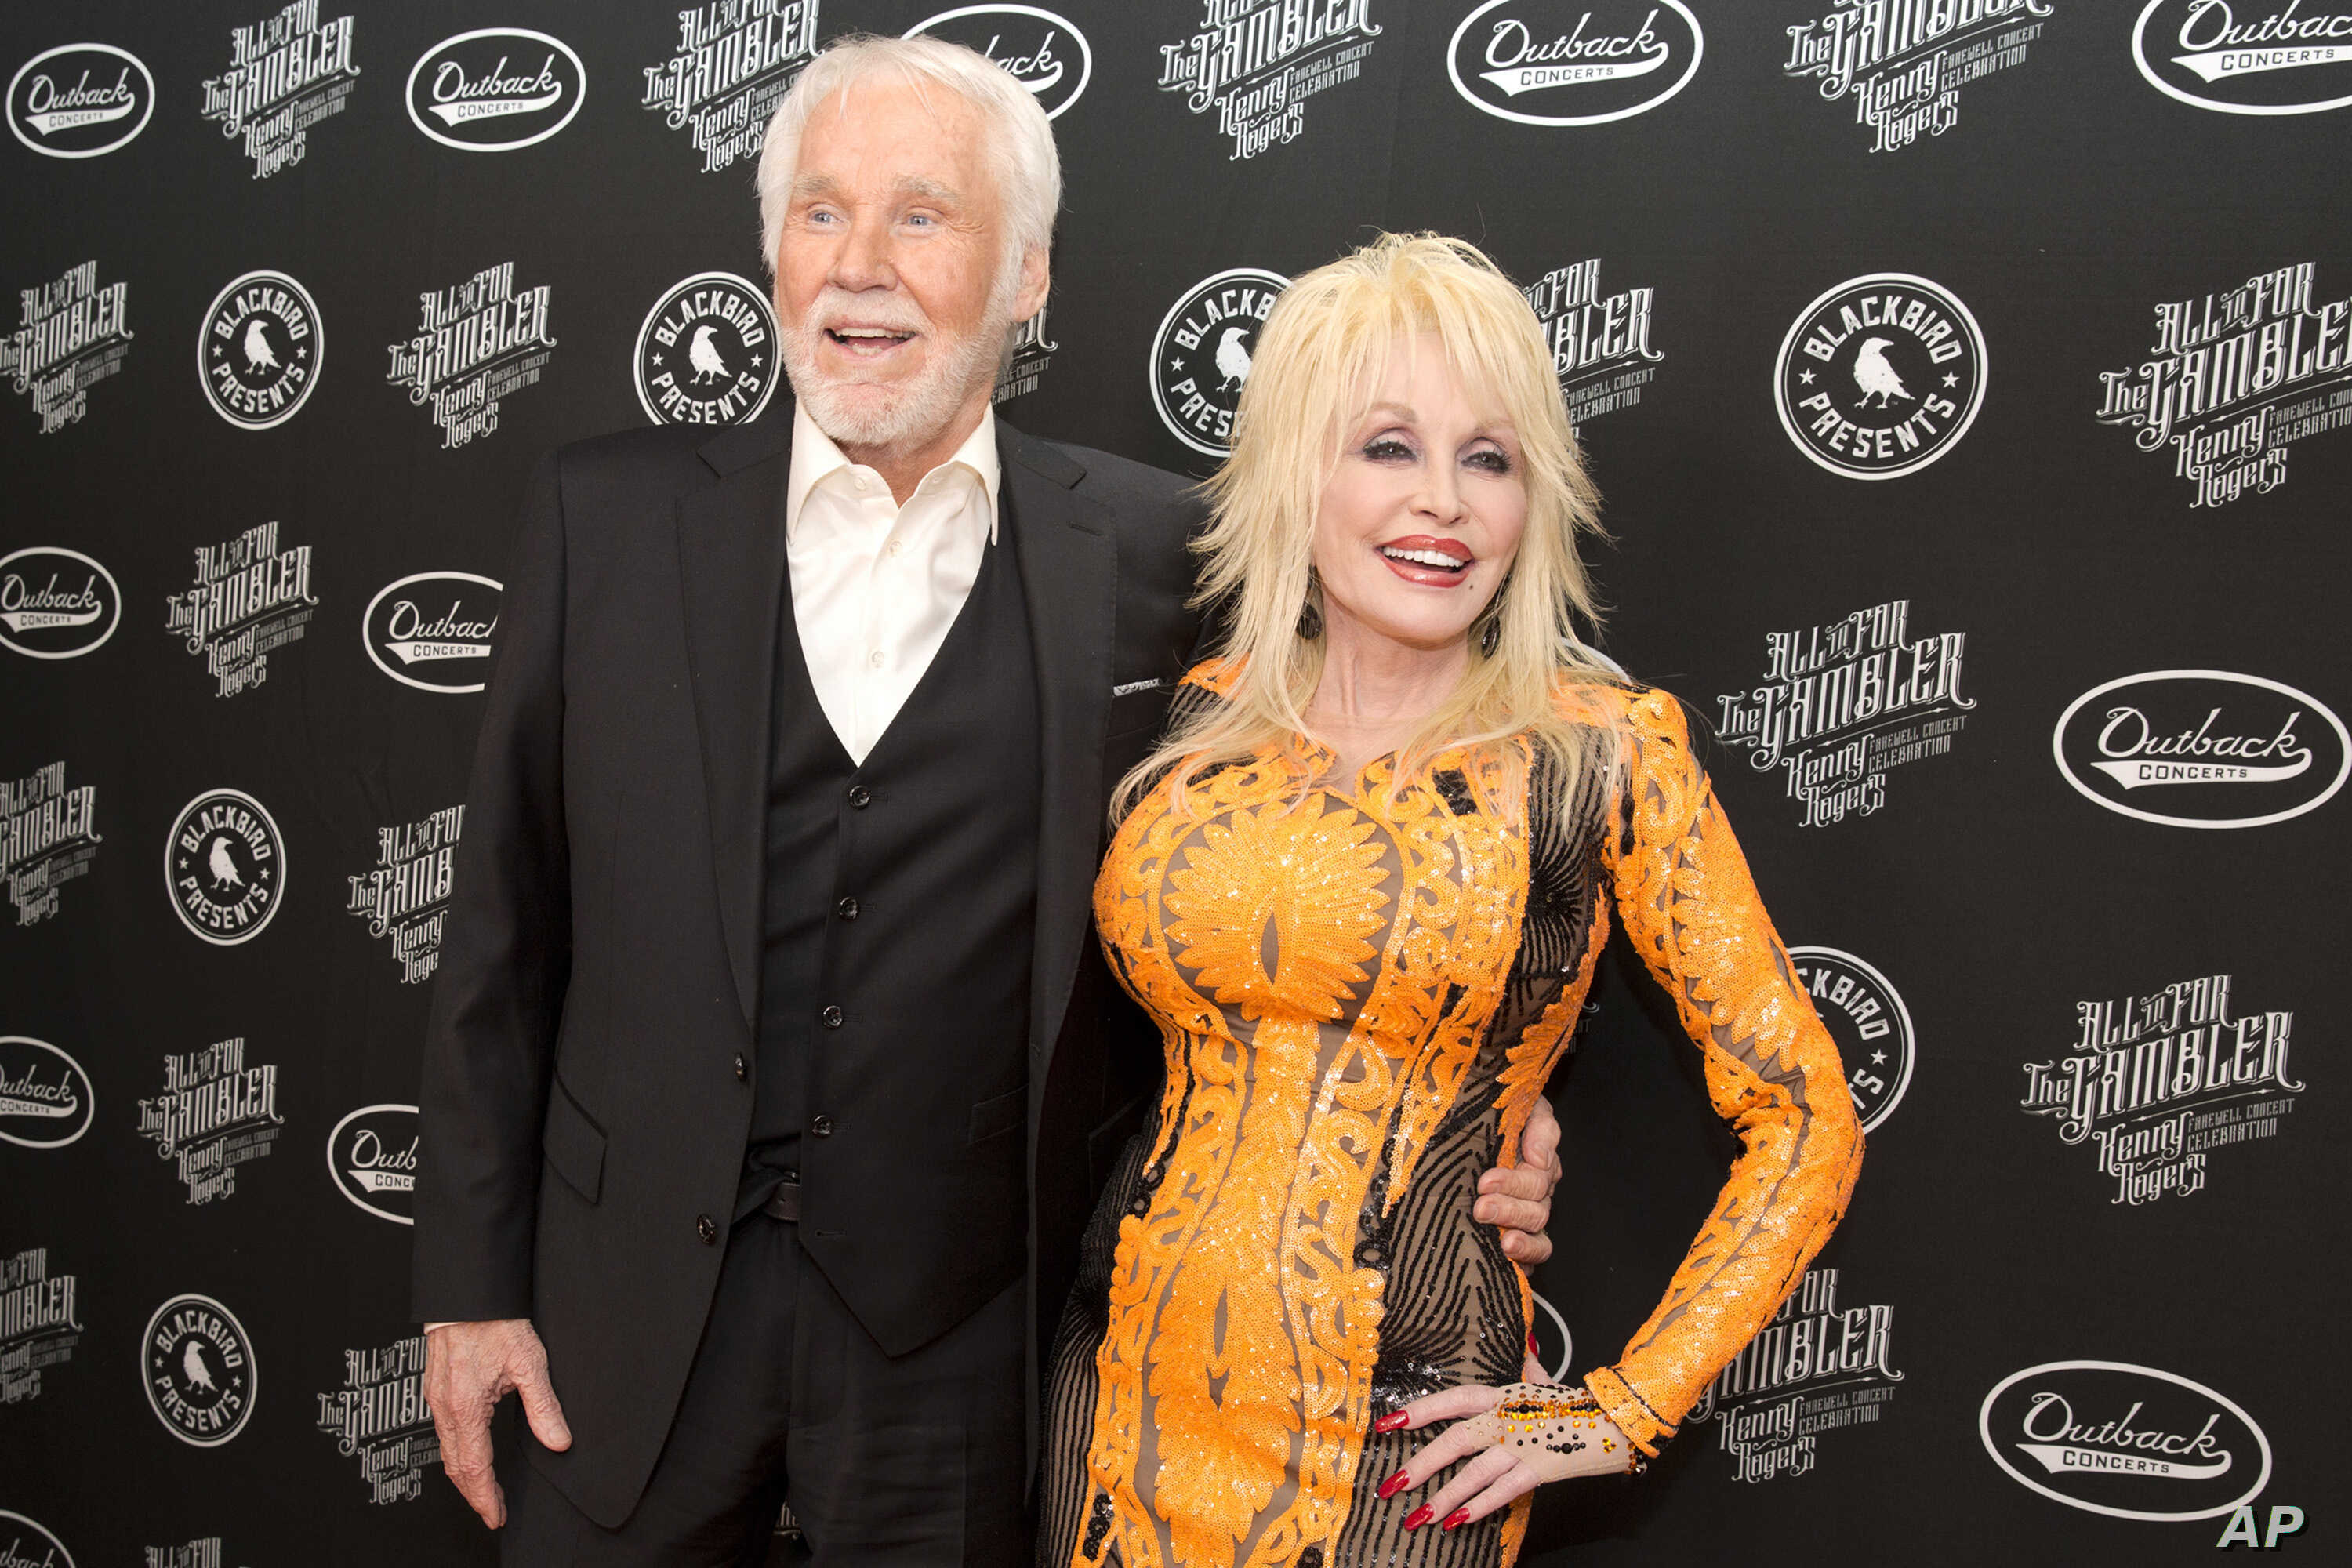 Actor Singer The Gambler Kenny Rogers Dies At 81 Voice Of America English